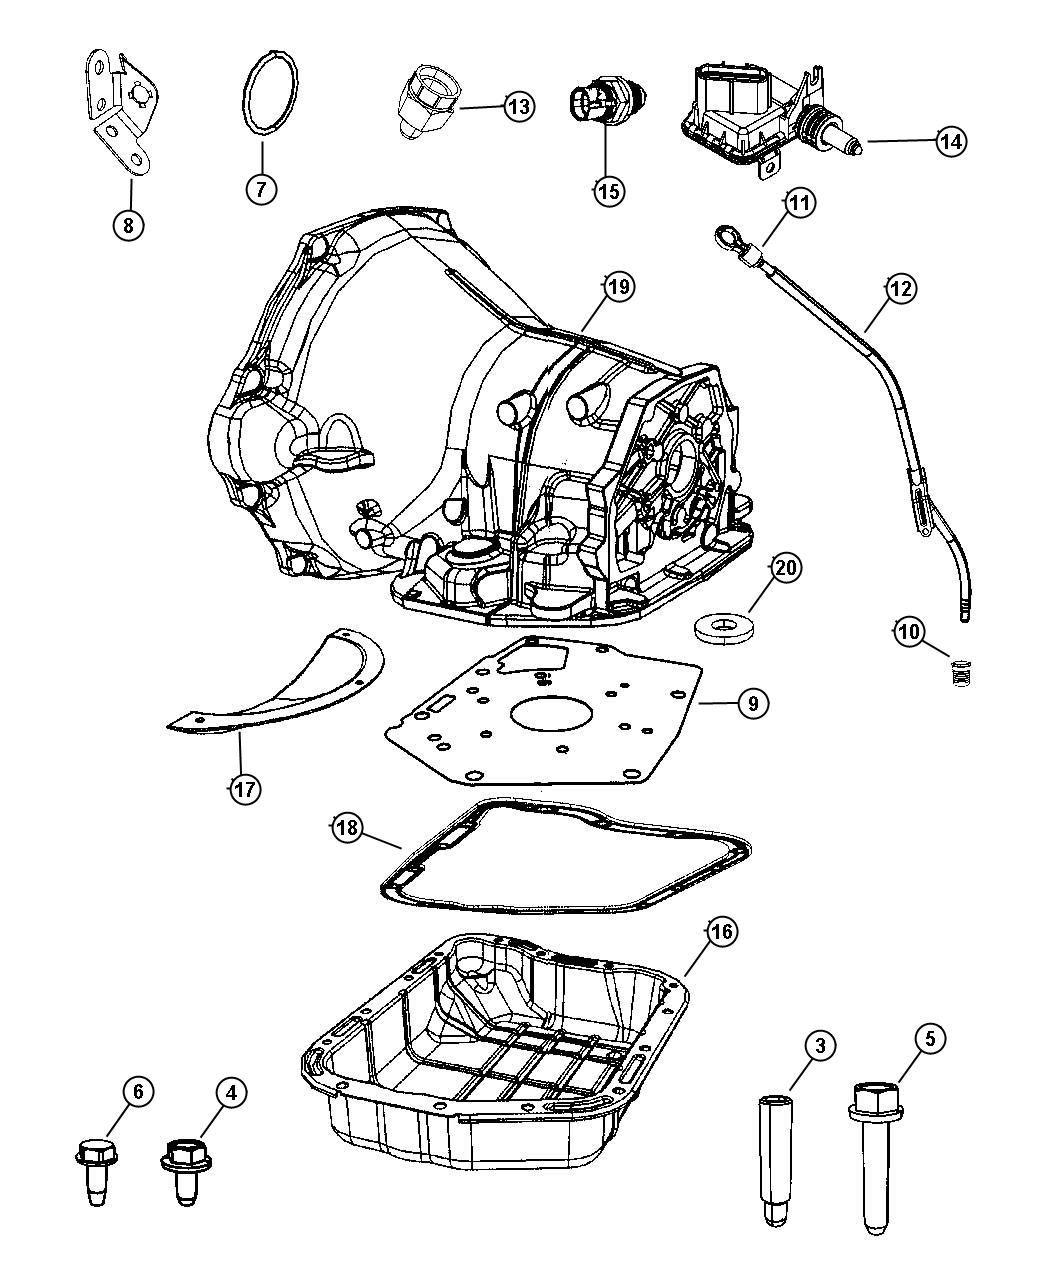 Kw Transfer Case Wiring Diagram Get Free Image